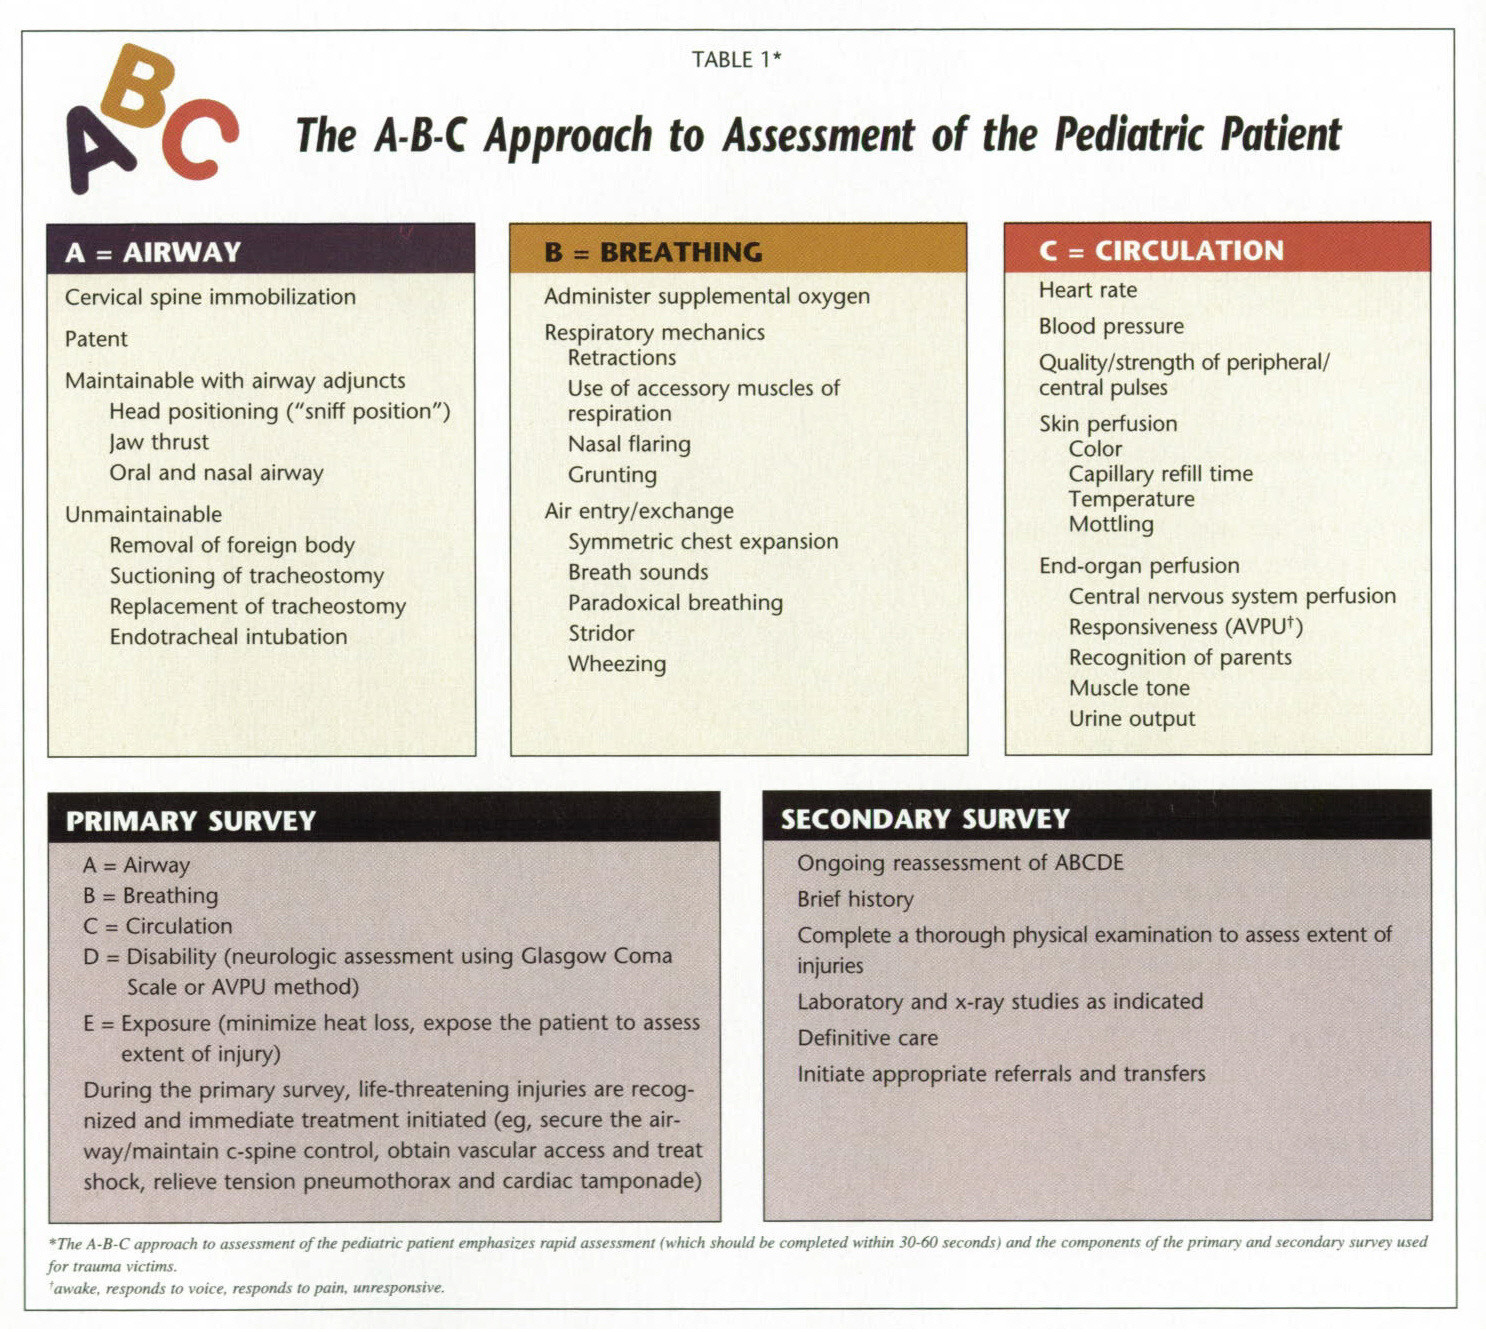 TABLE 1The A-B-C Approach to Assessment of the Pediatric Patient